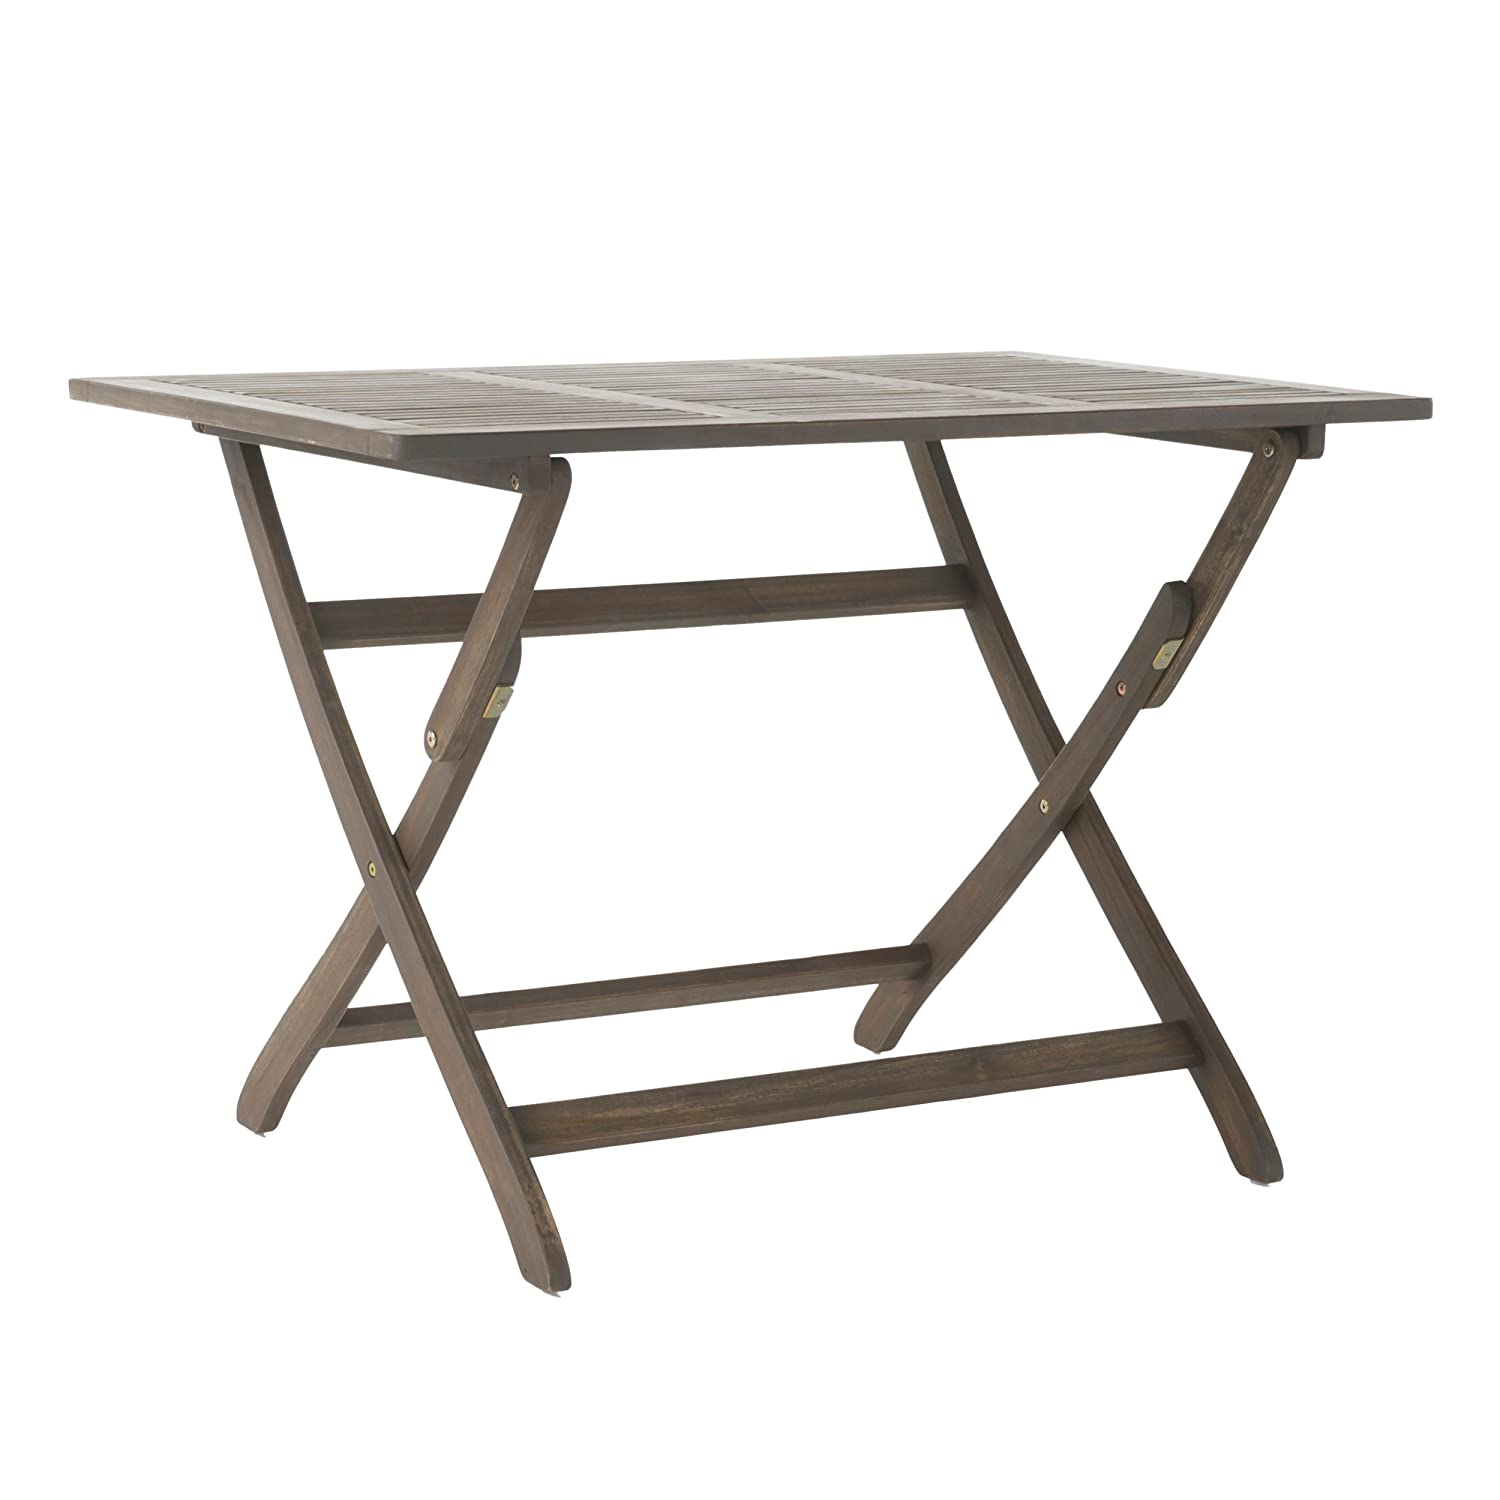 St Nevis Outdoor Grey Finish Acacia Wood Foldable Dining Table